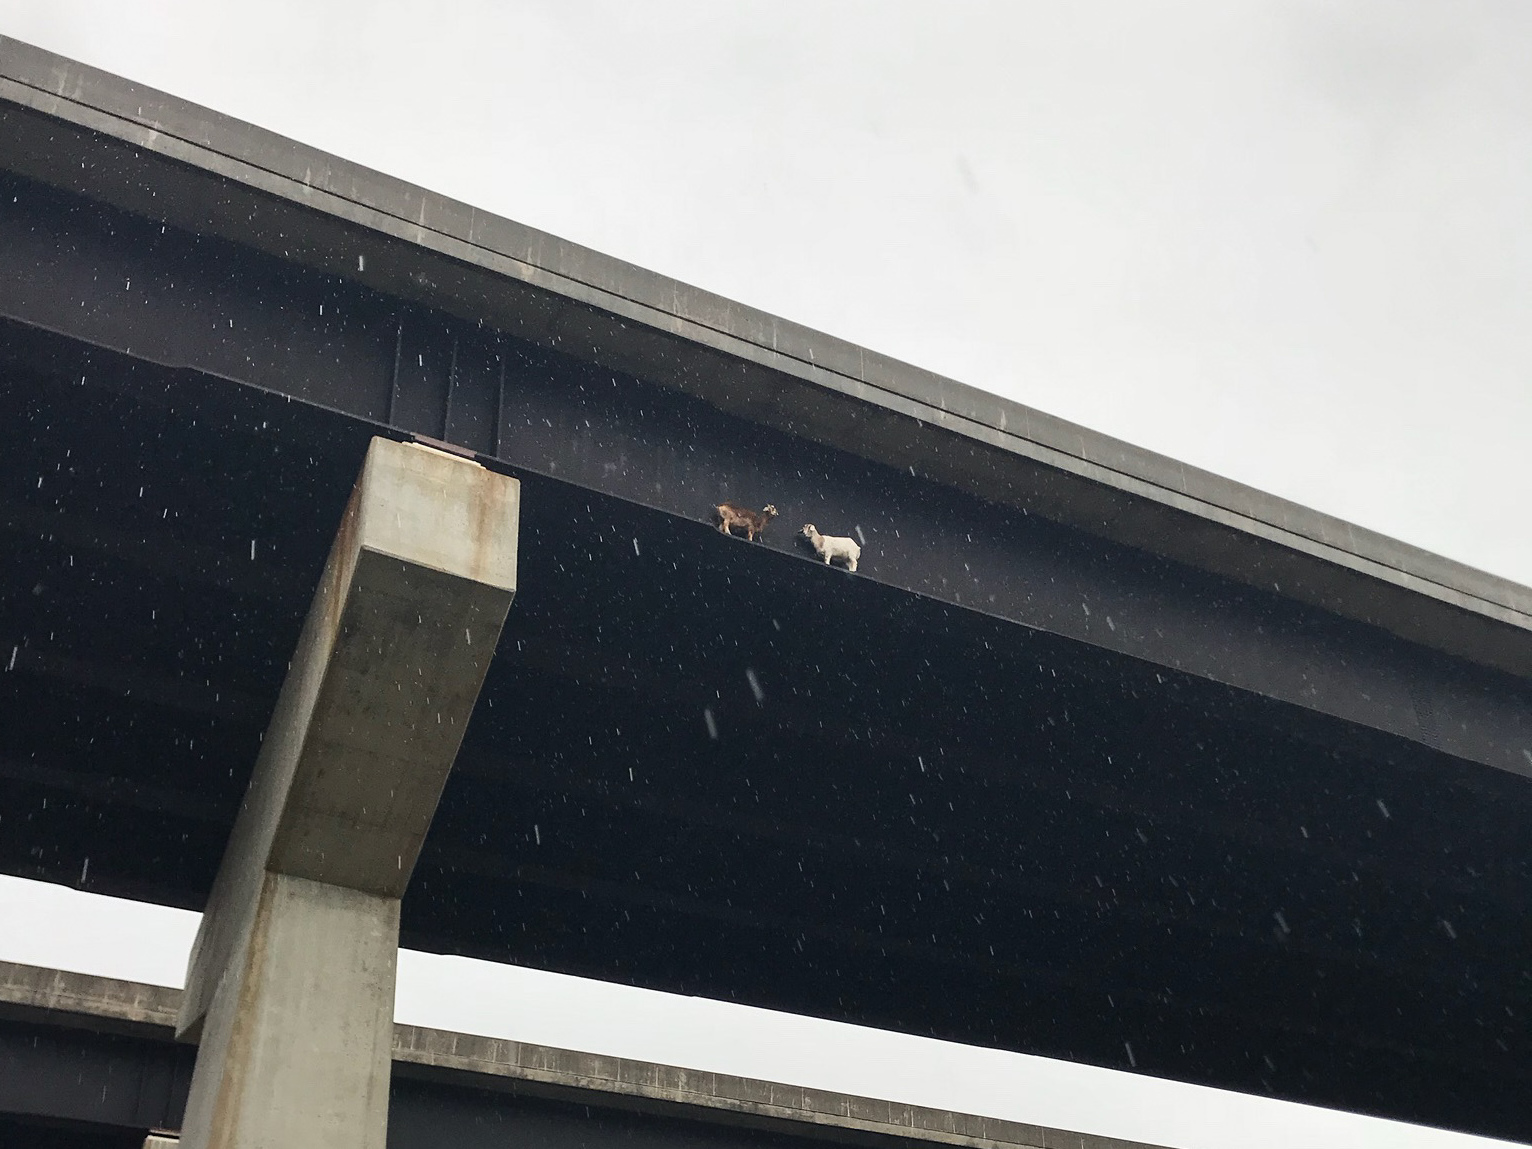 See that little brown critter and that little white critter? They're goats stuck on a bridge in western Pennsylvania. The white goat is facing in the wrong direction to walk off the beam, about 100 feet high, and return to solid ground.